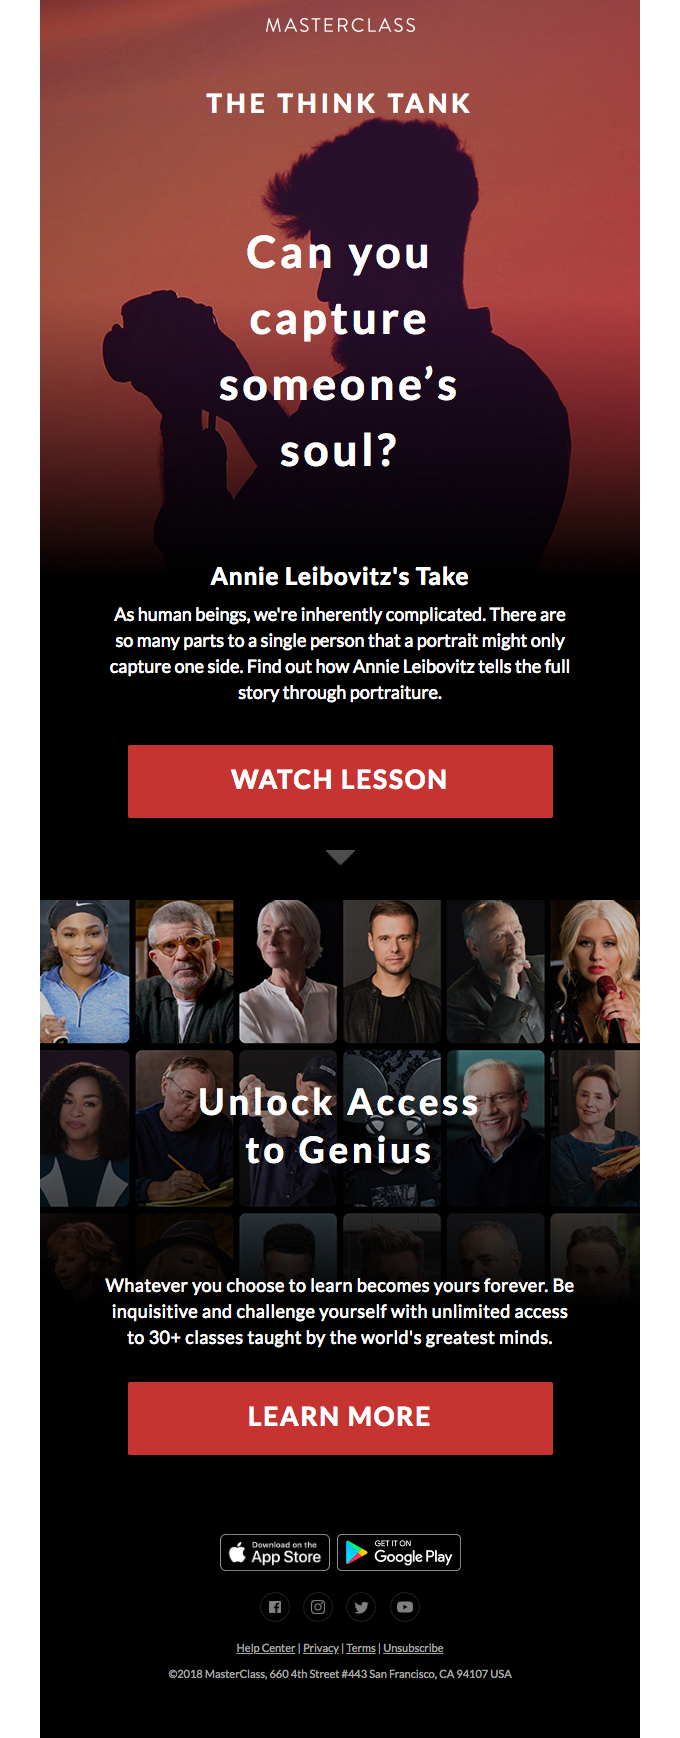 The Think Tank: Annie Leibovitz on capturing someone's soul